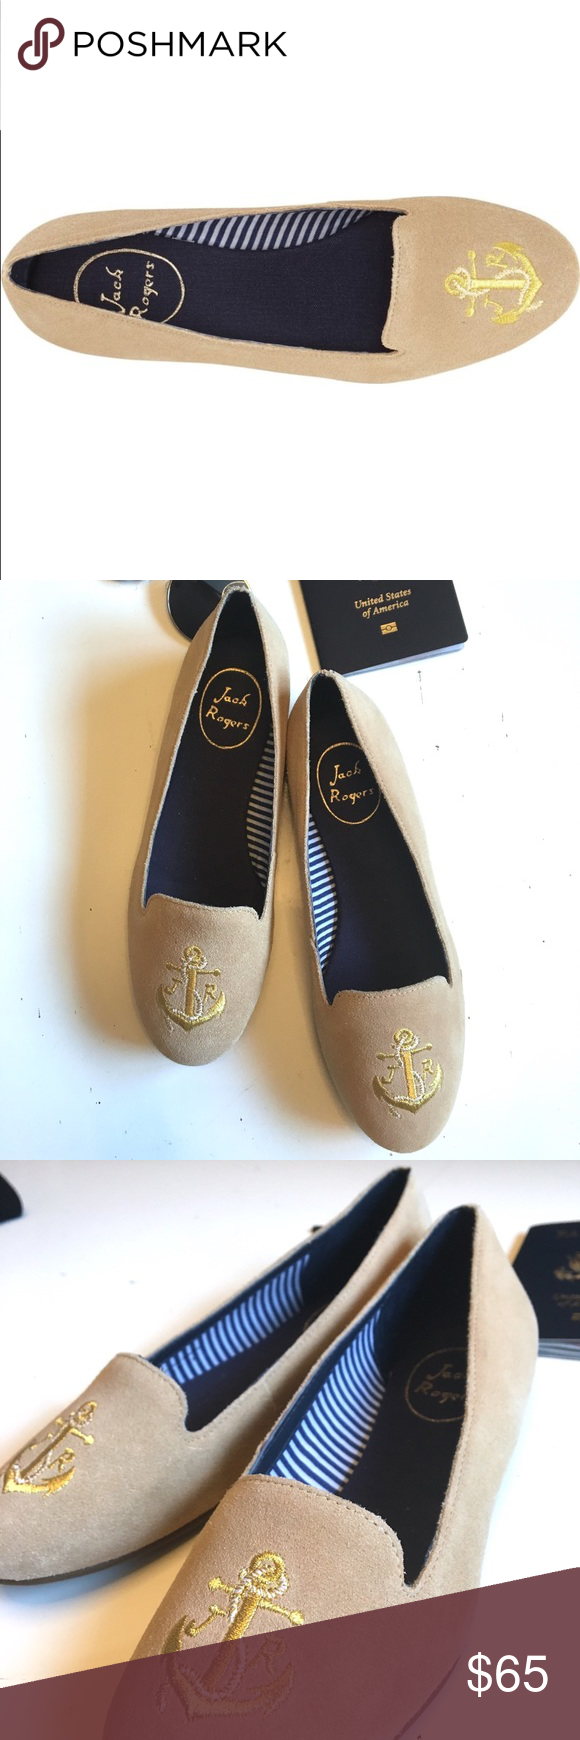 82cf6d86efc JACK ROGERS Suede Anchor Loafers Never worn!!Ahoy matey! The fine loafer  feature